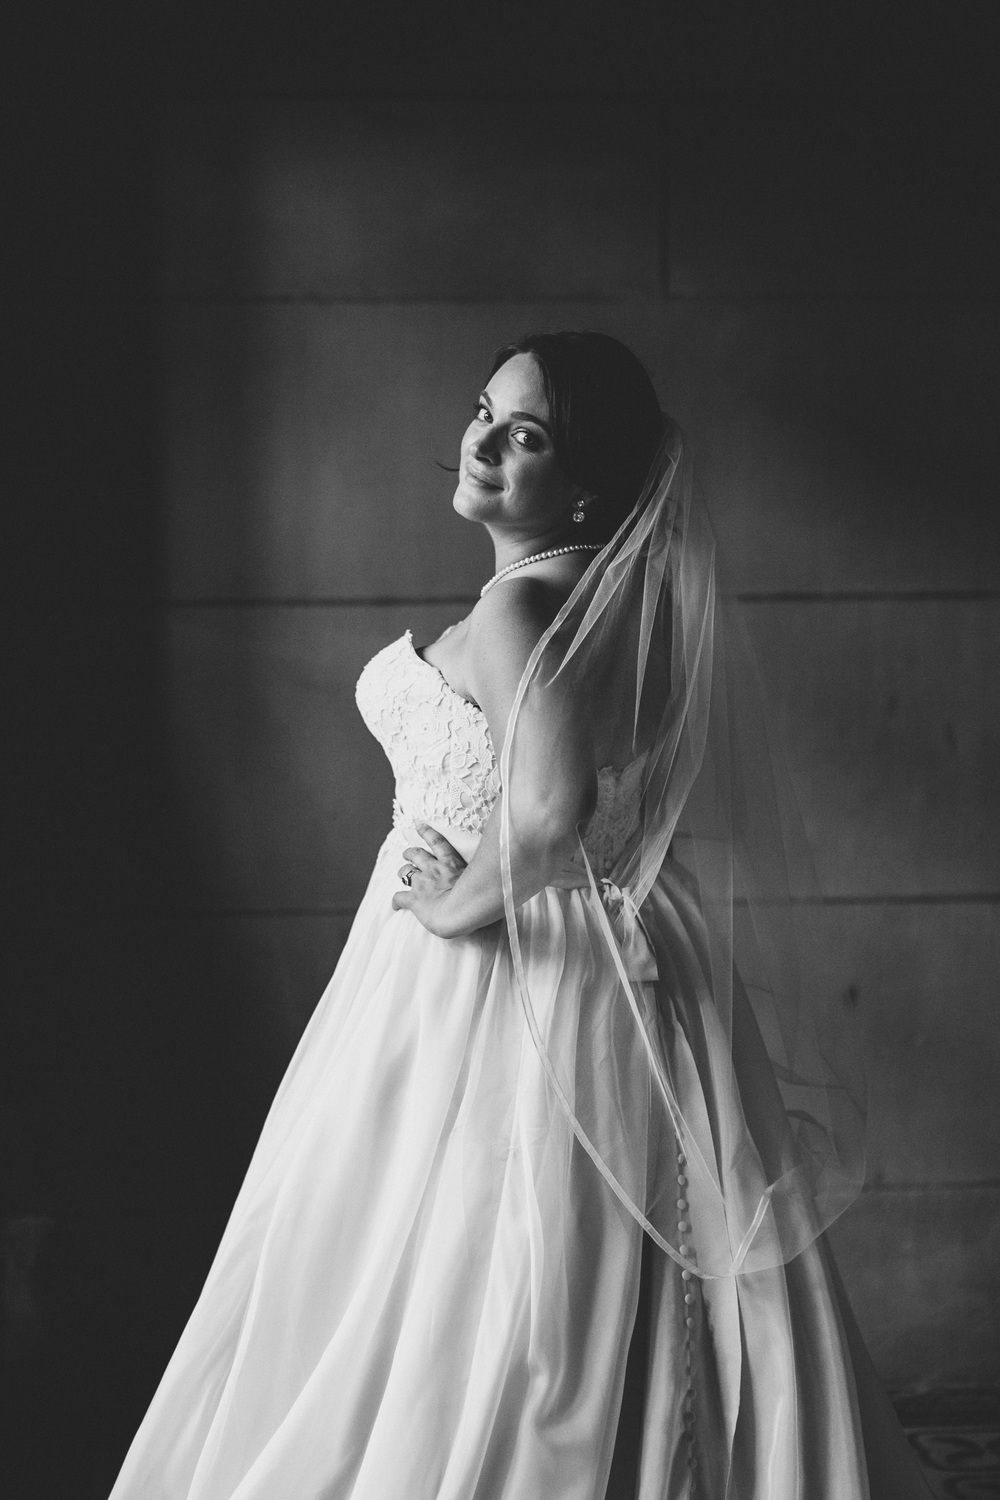 Romantic Black and White Portraits